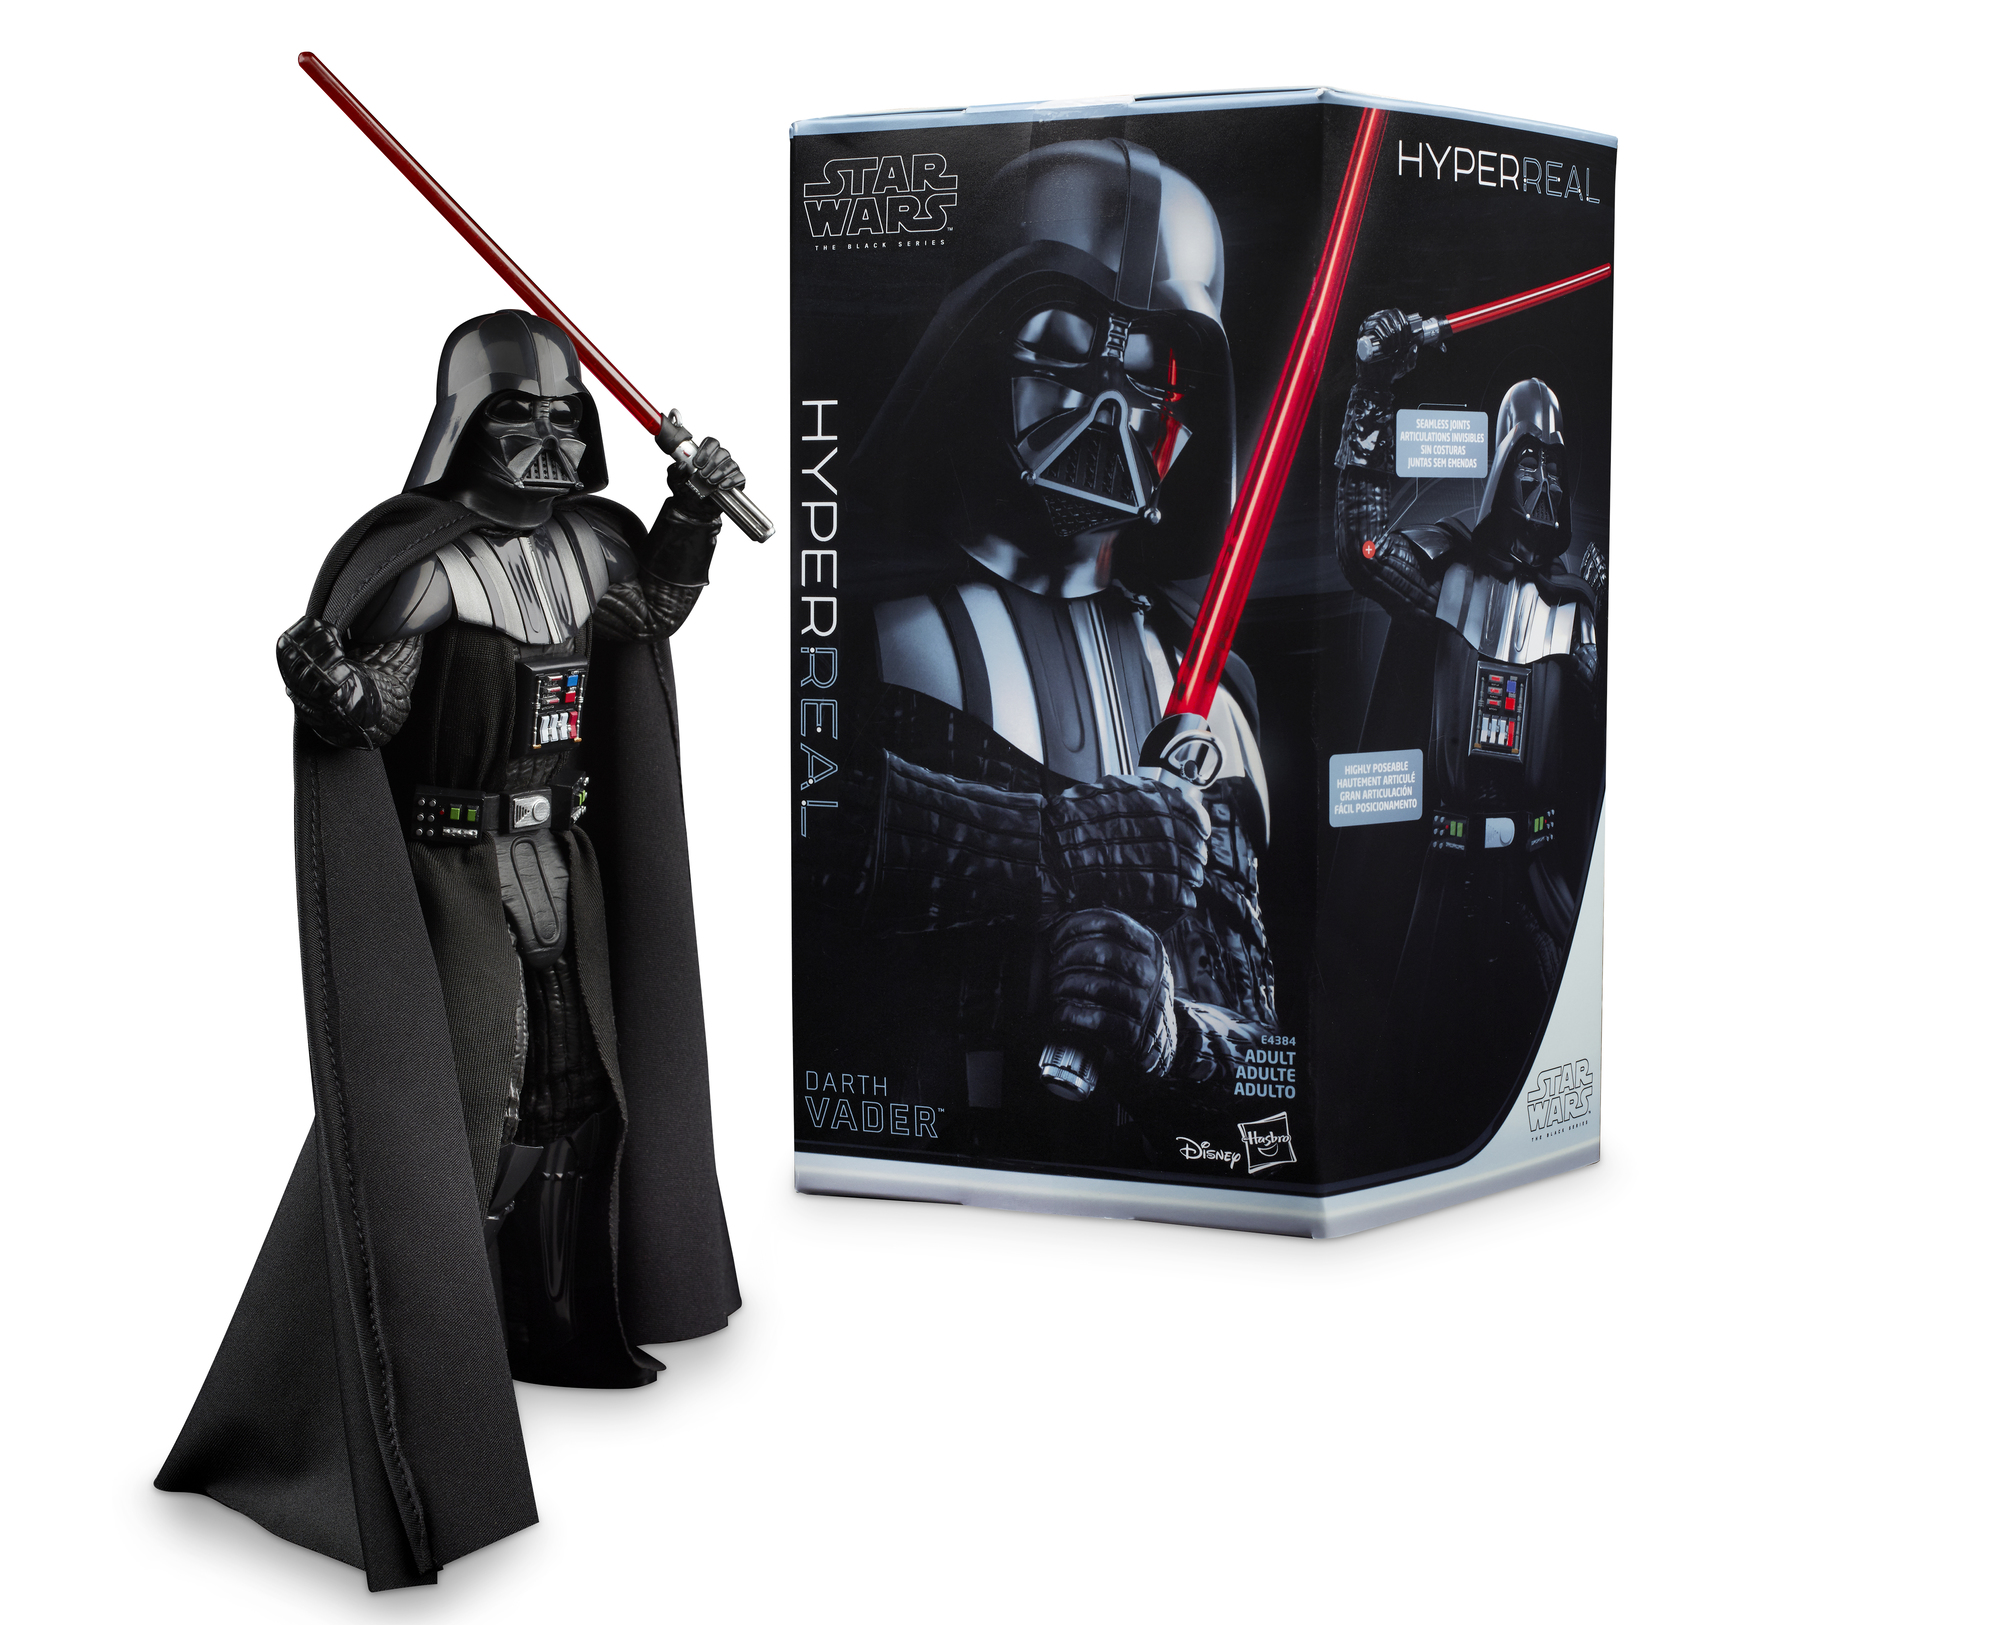 Star Wars The Black Series Hyperreal Episode V The Empire Strikes Back 8-Inch-Scale Darth Vader Action Figure... by Hasbro Inc.